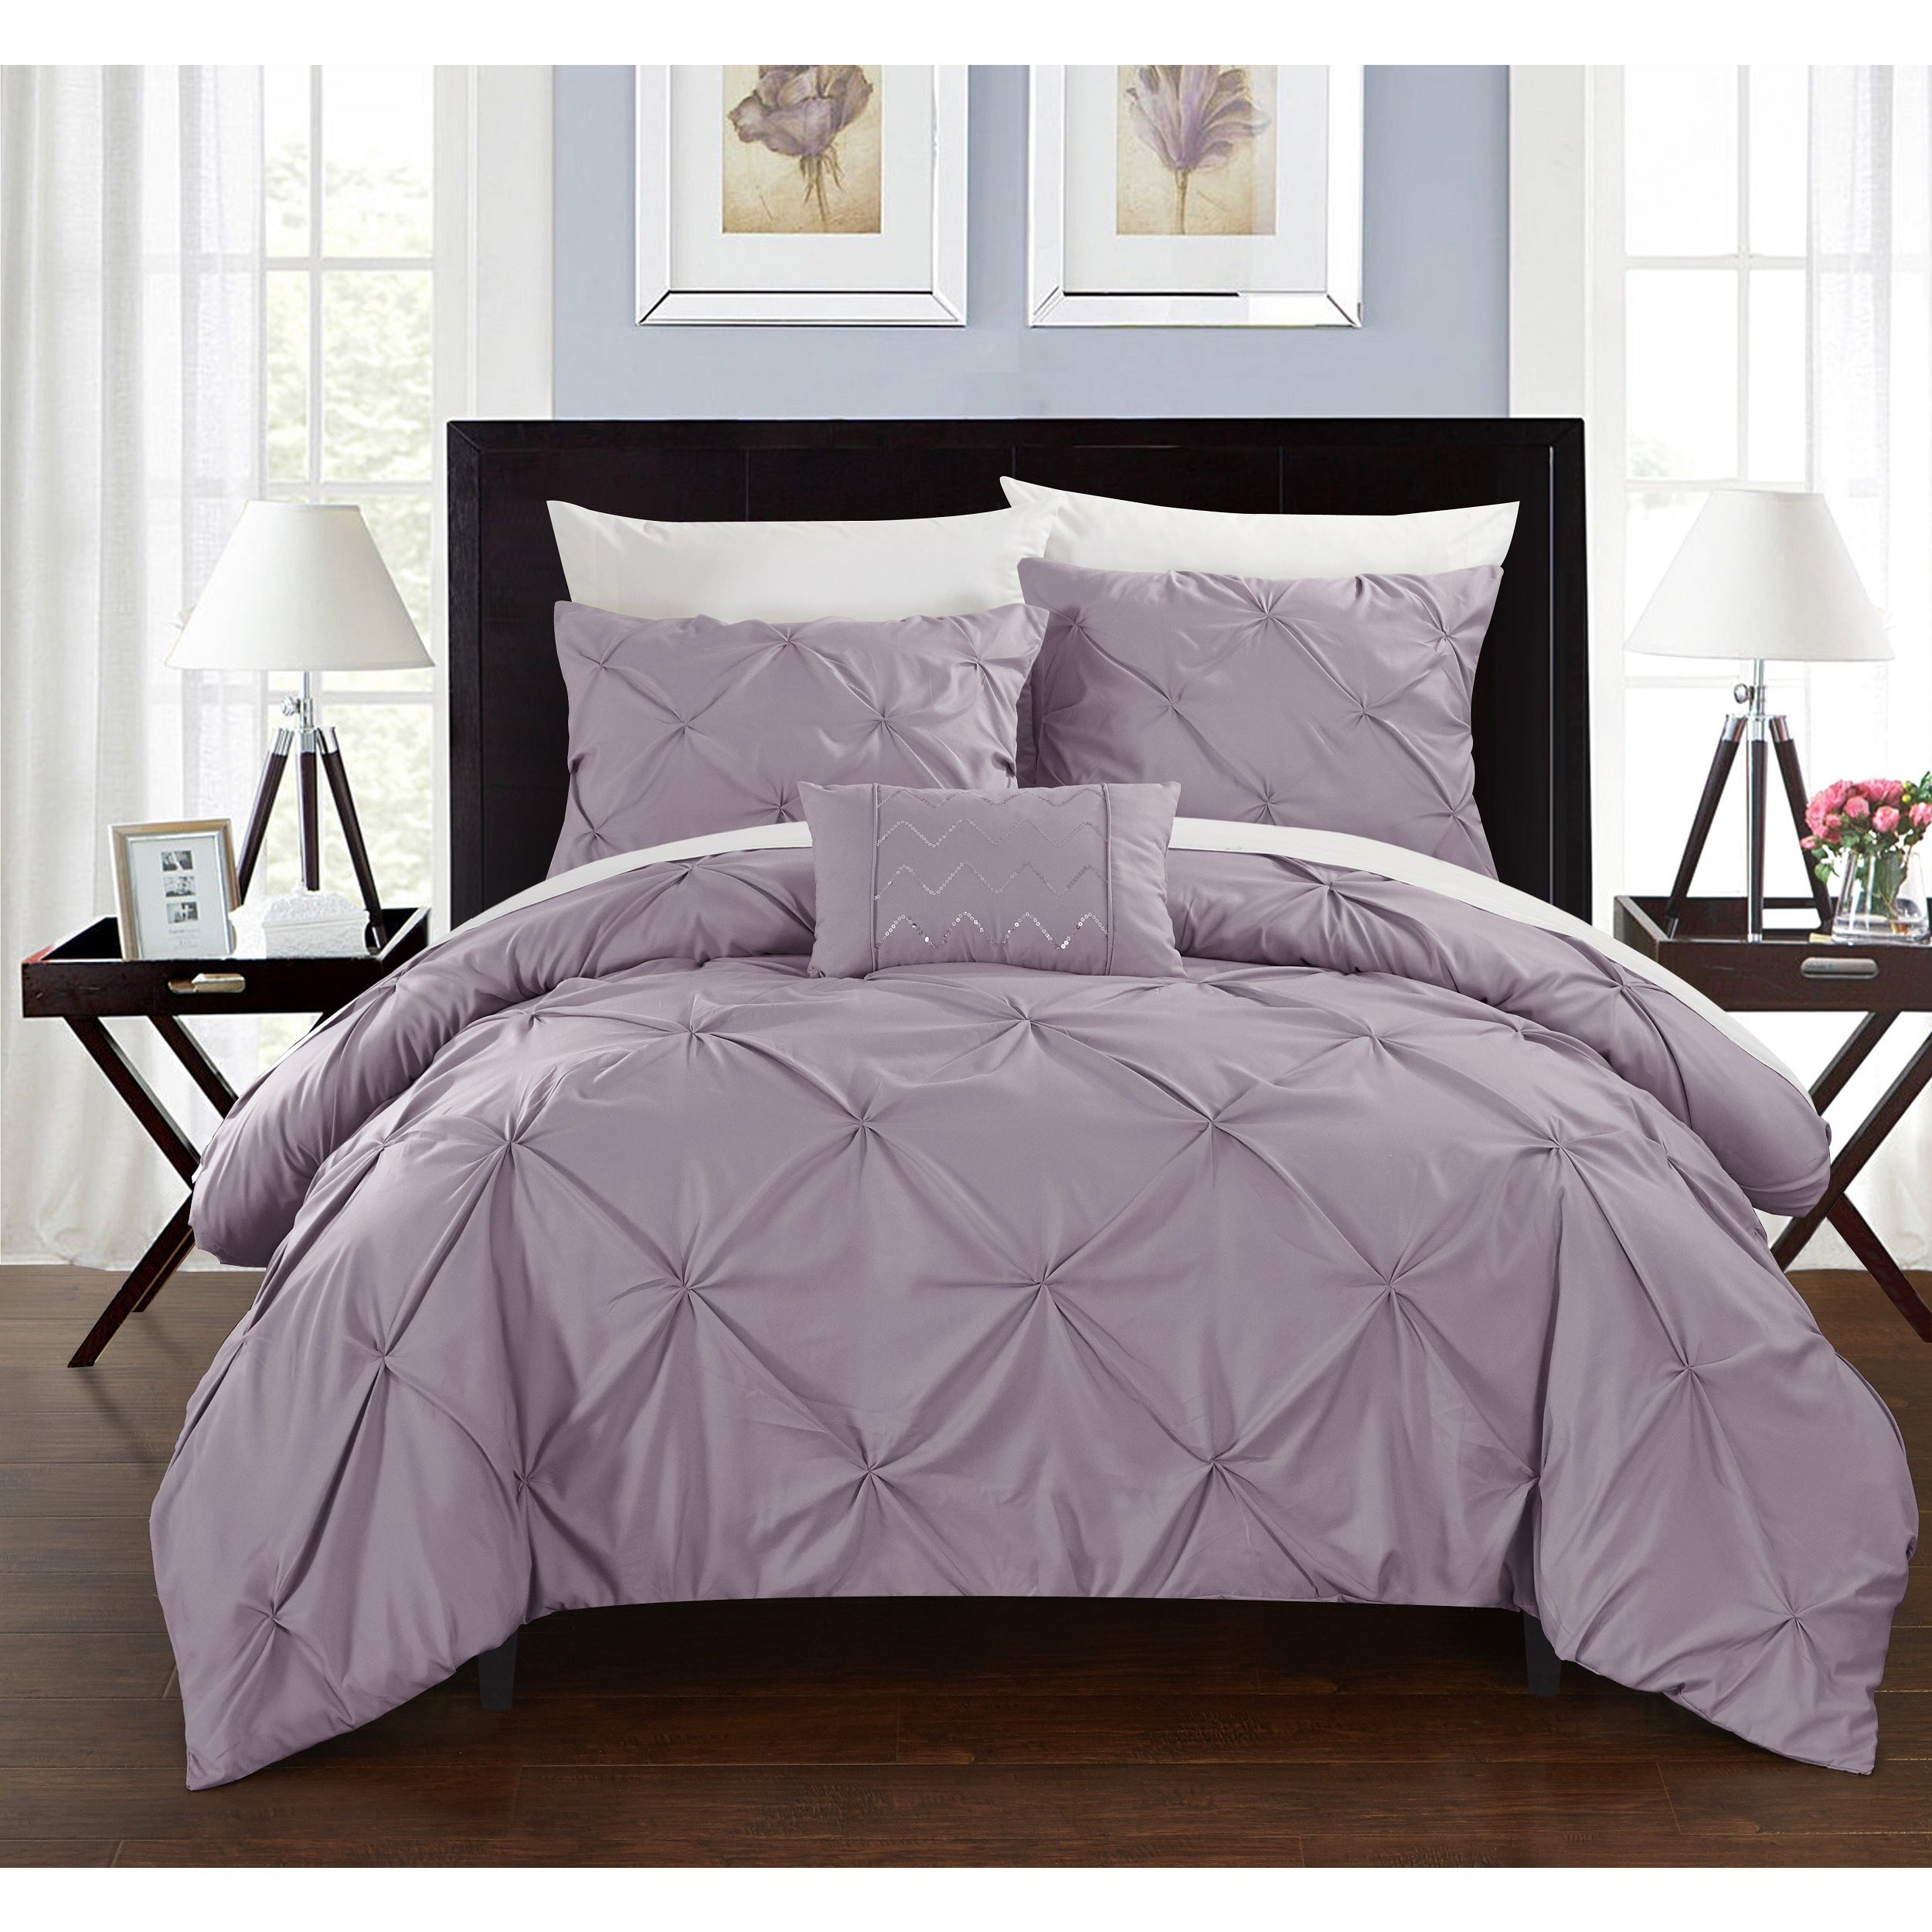 Shop silver orchid niven 4 piece lavender duvet cover set on sale free shipping today overstock com 20254279